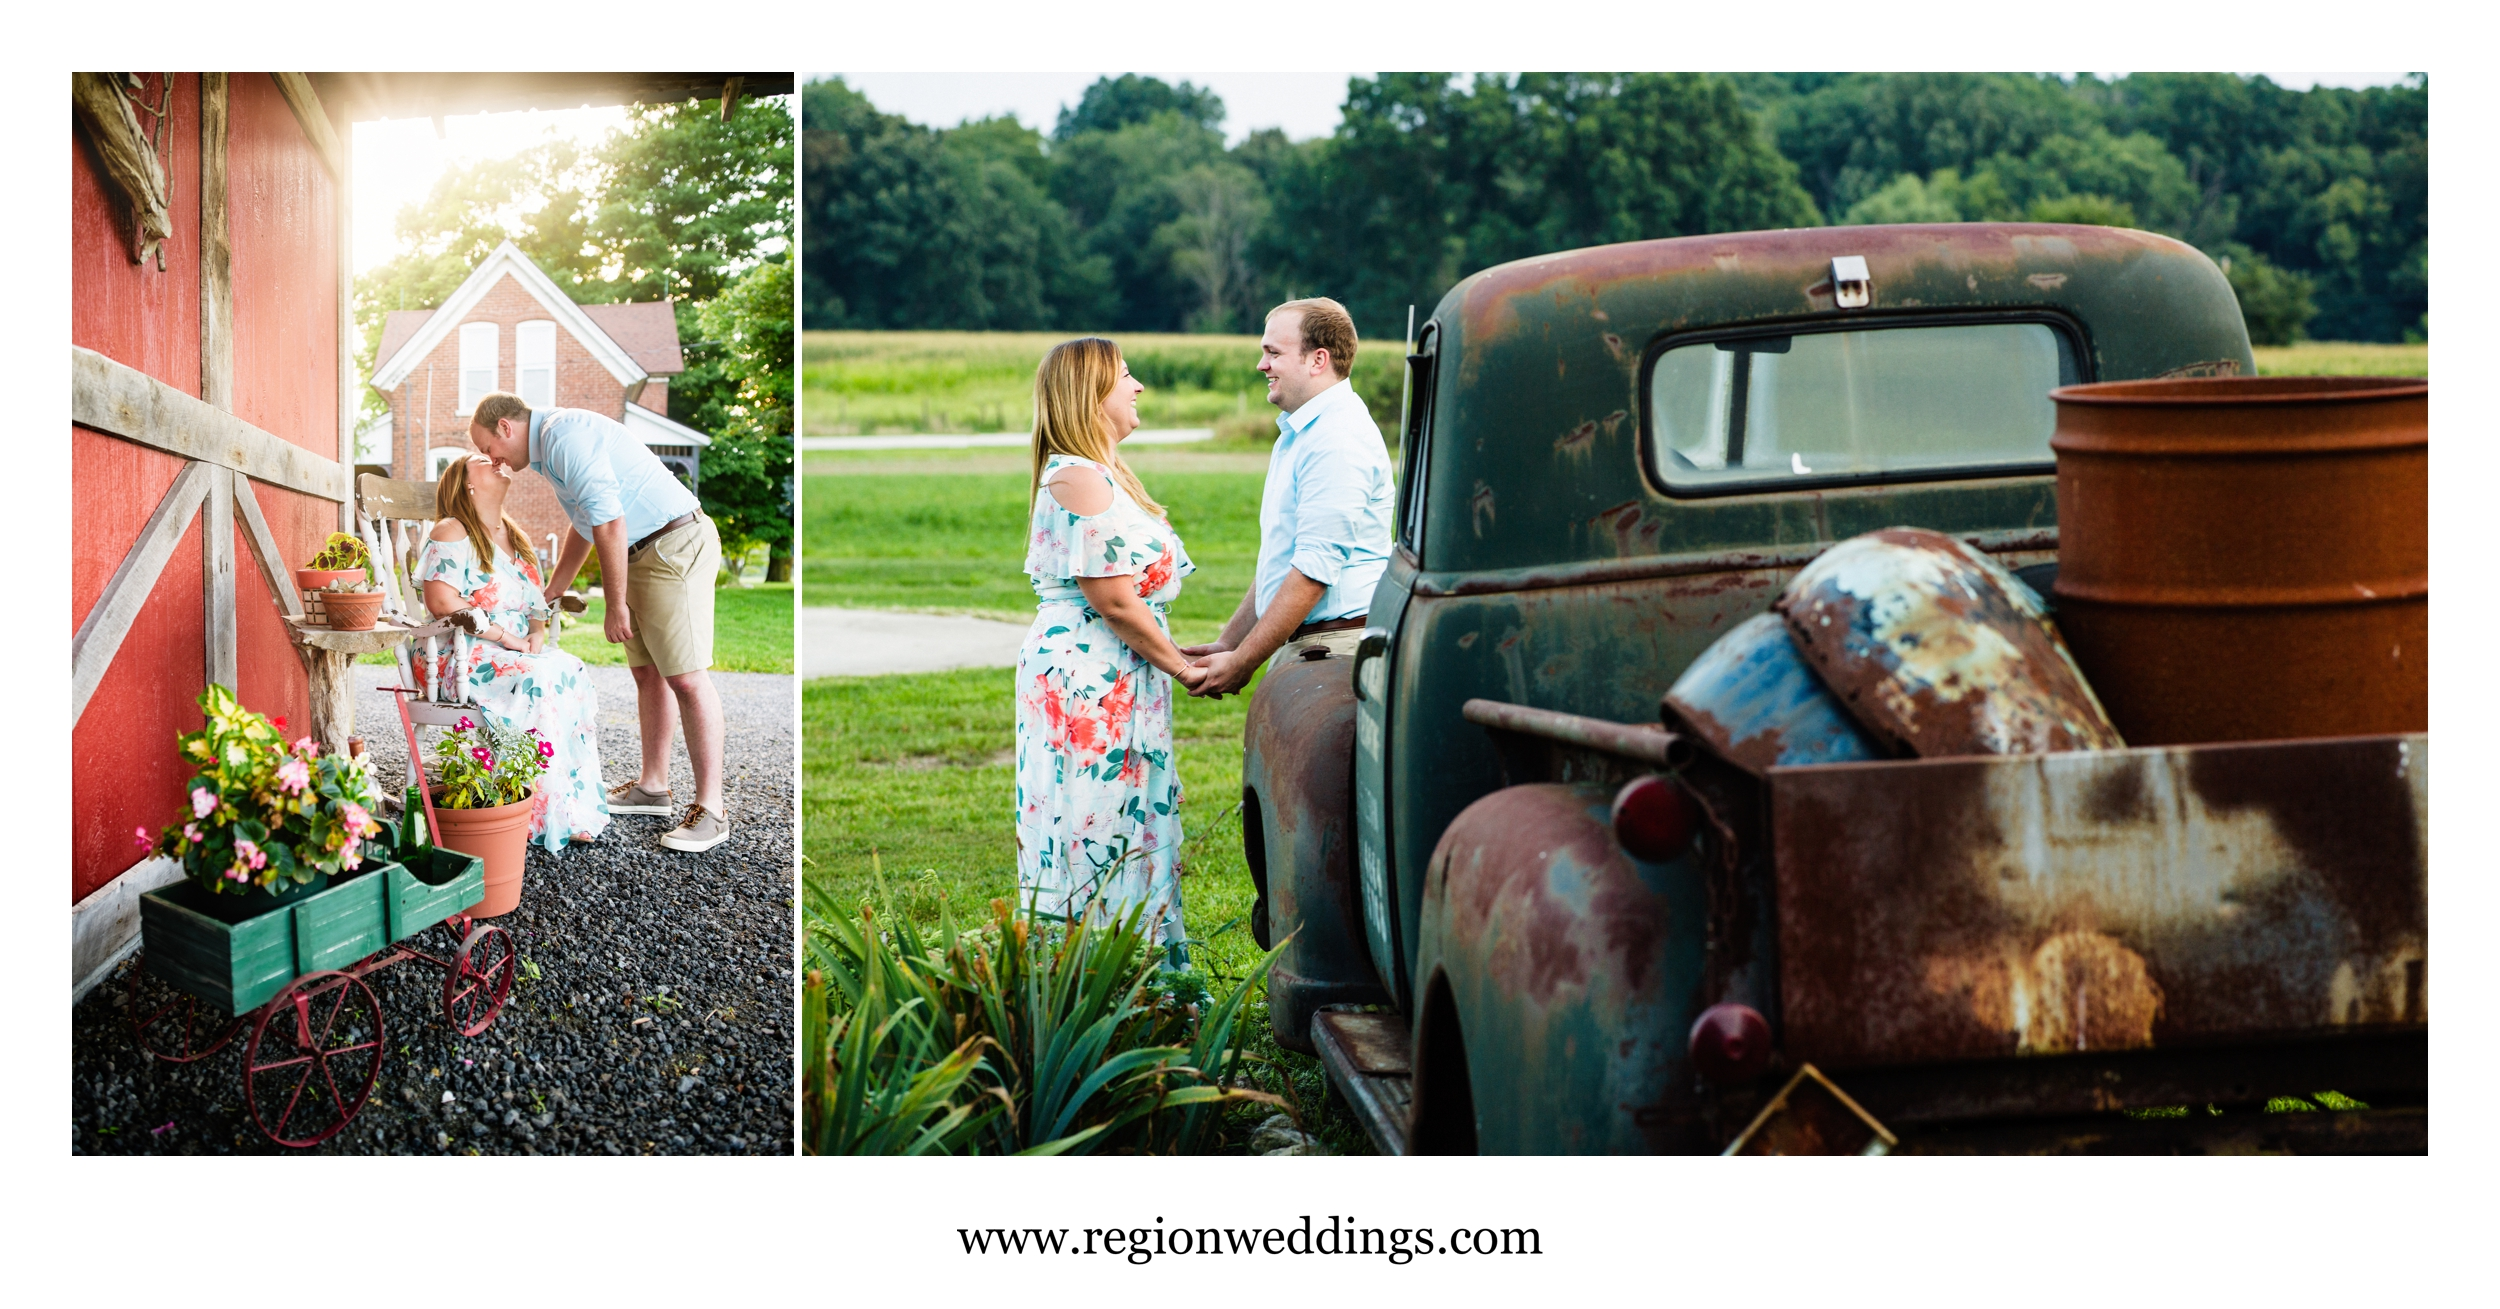 Romantic engagement photos at Four Corners Winery.